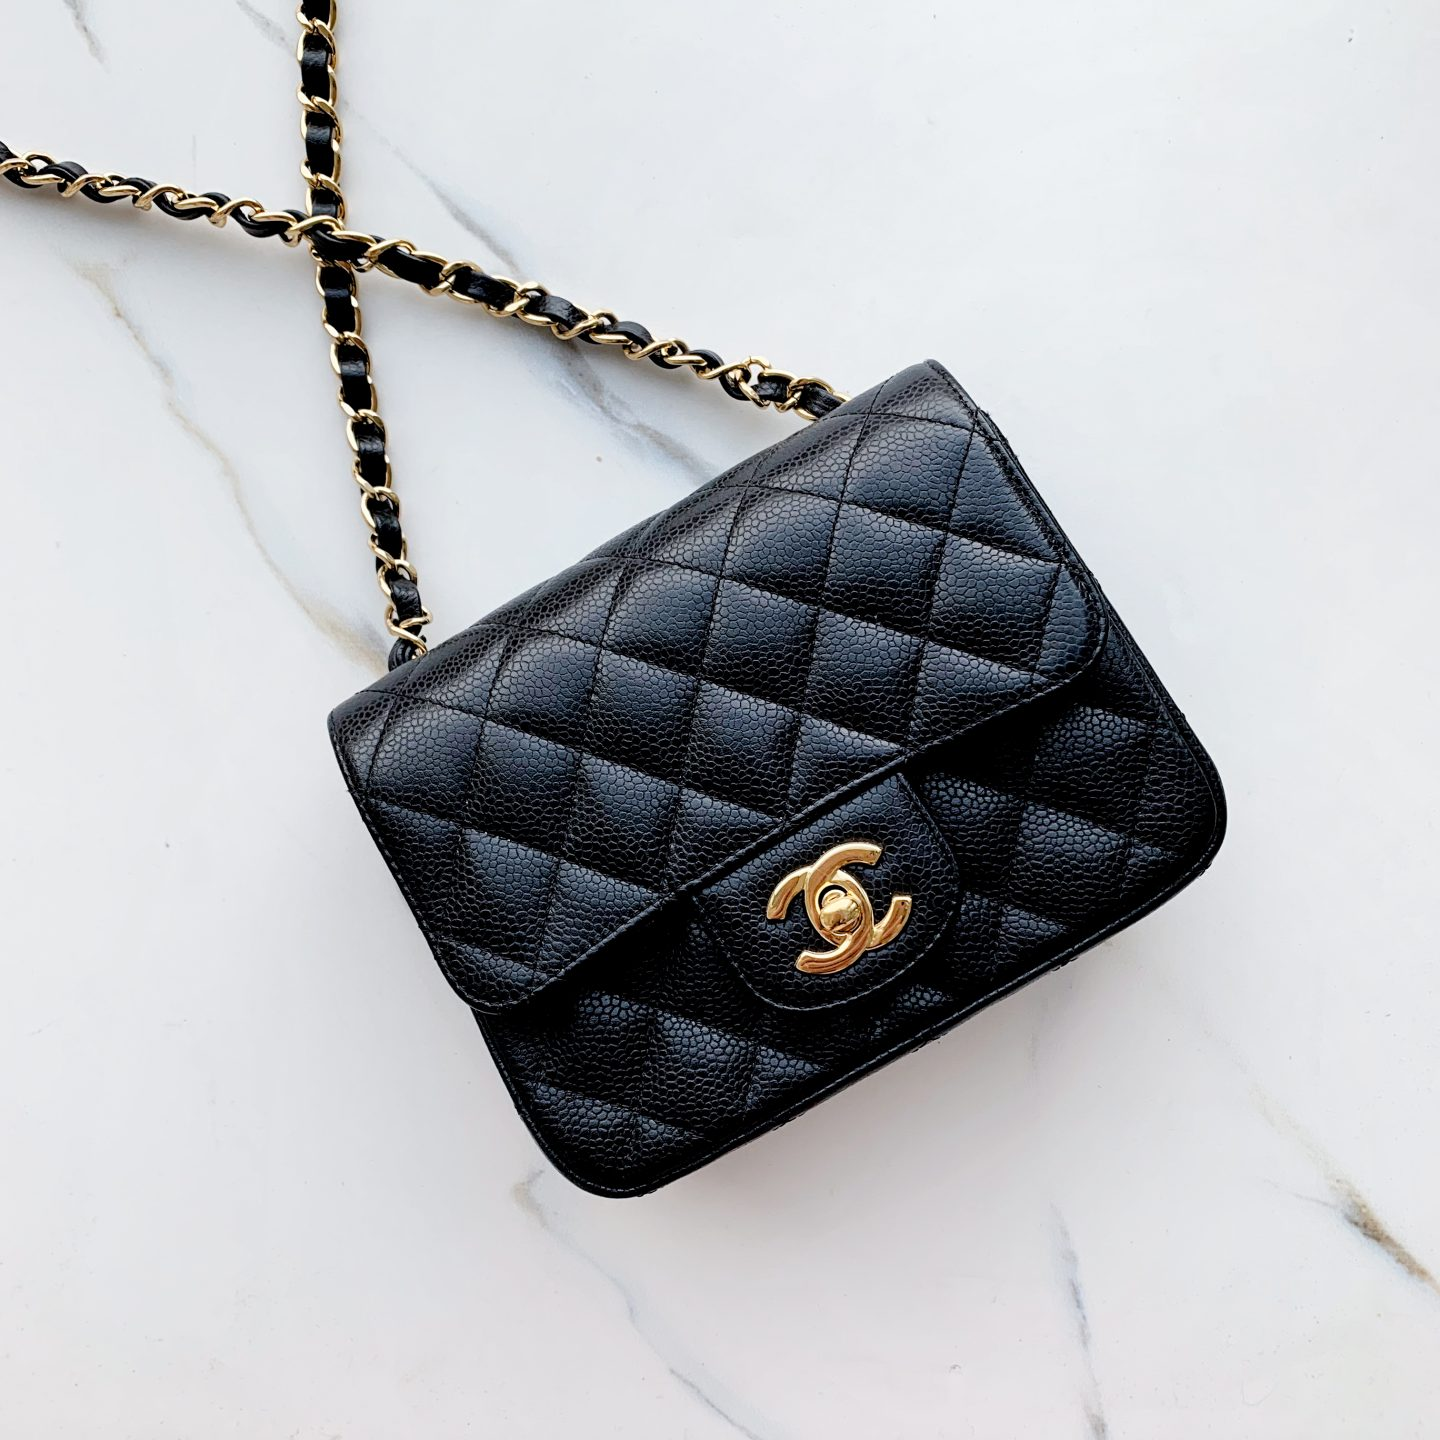 19759c8c18fffe Leather and colour are also important factors to consider when deciding on  your first Chanel bag. Chanel offer many different varieties however the  two most ...